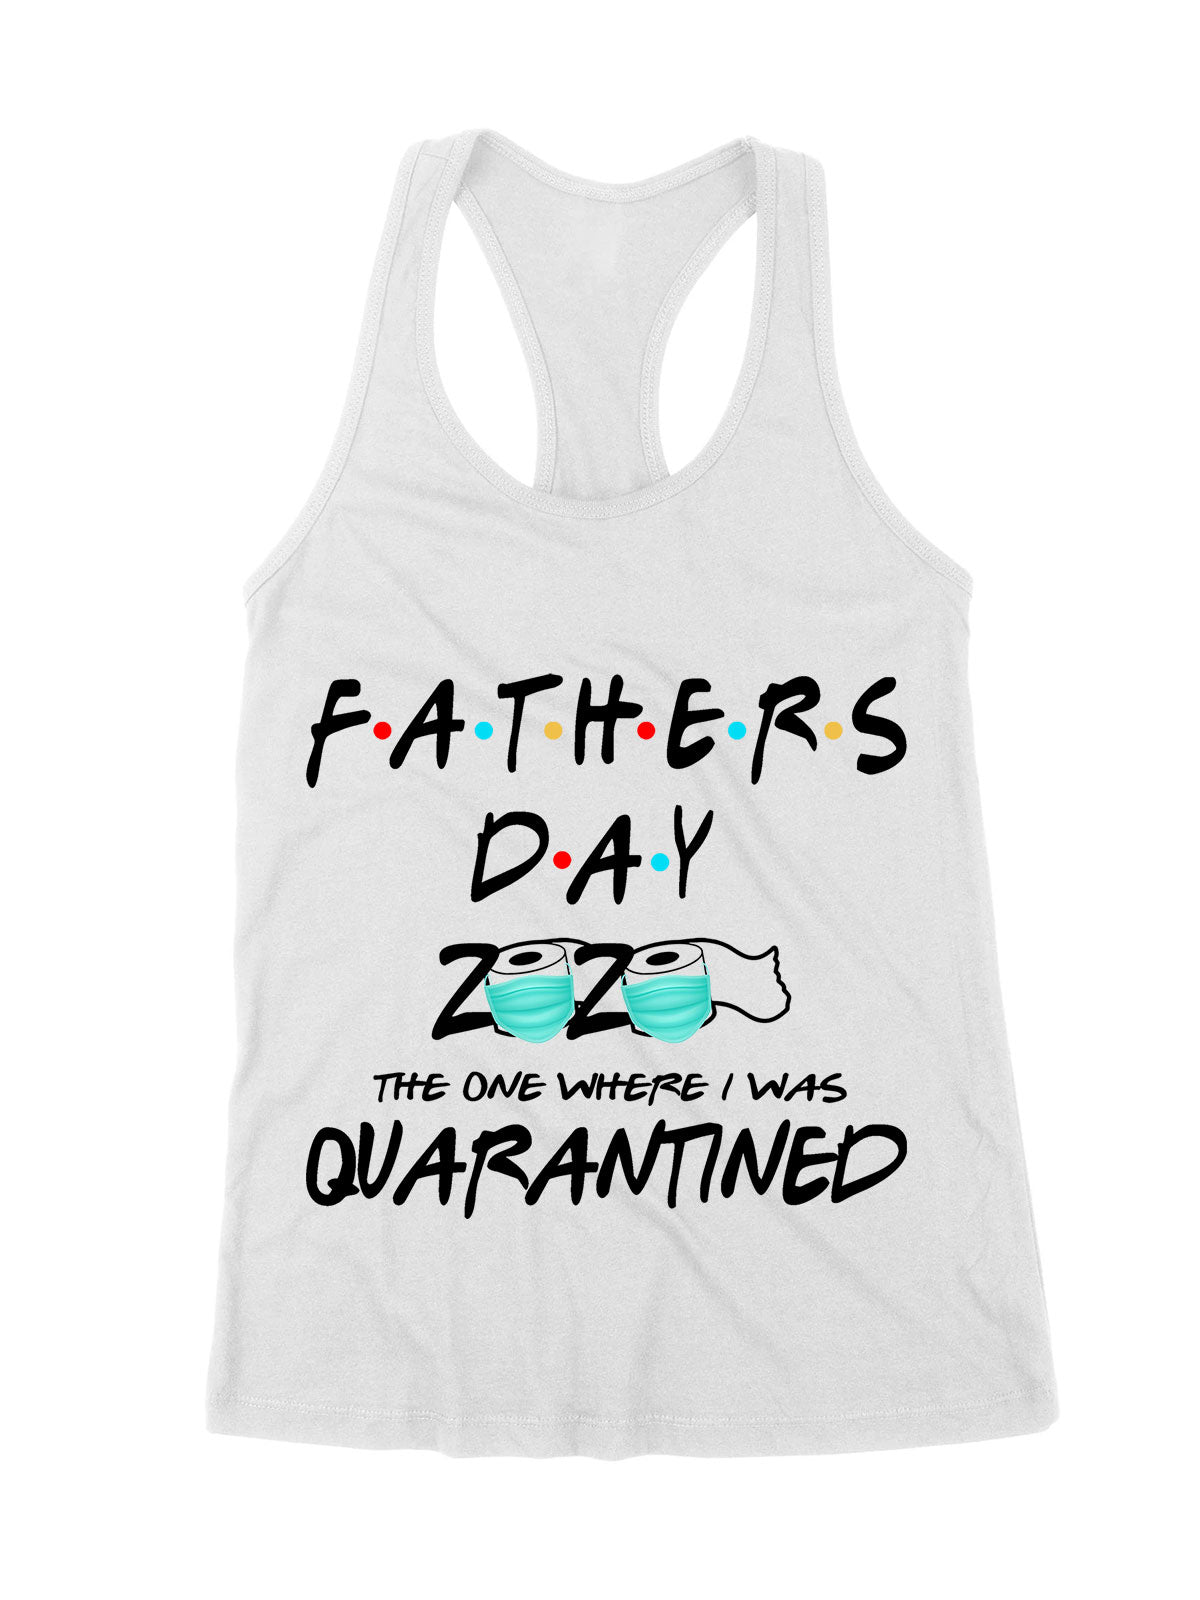 Standard T-Shirt - Quarantine 2020 - Father's Day, Gifts For Dad - 5496